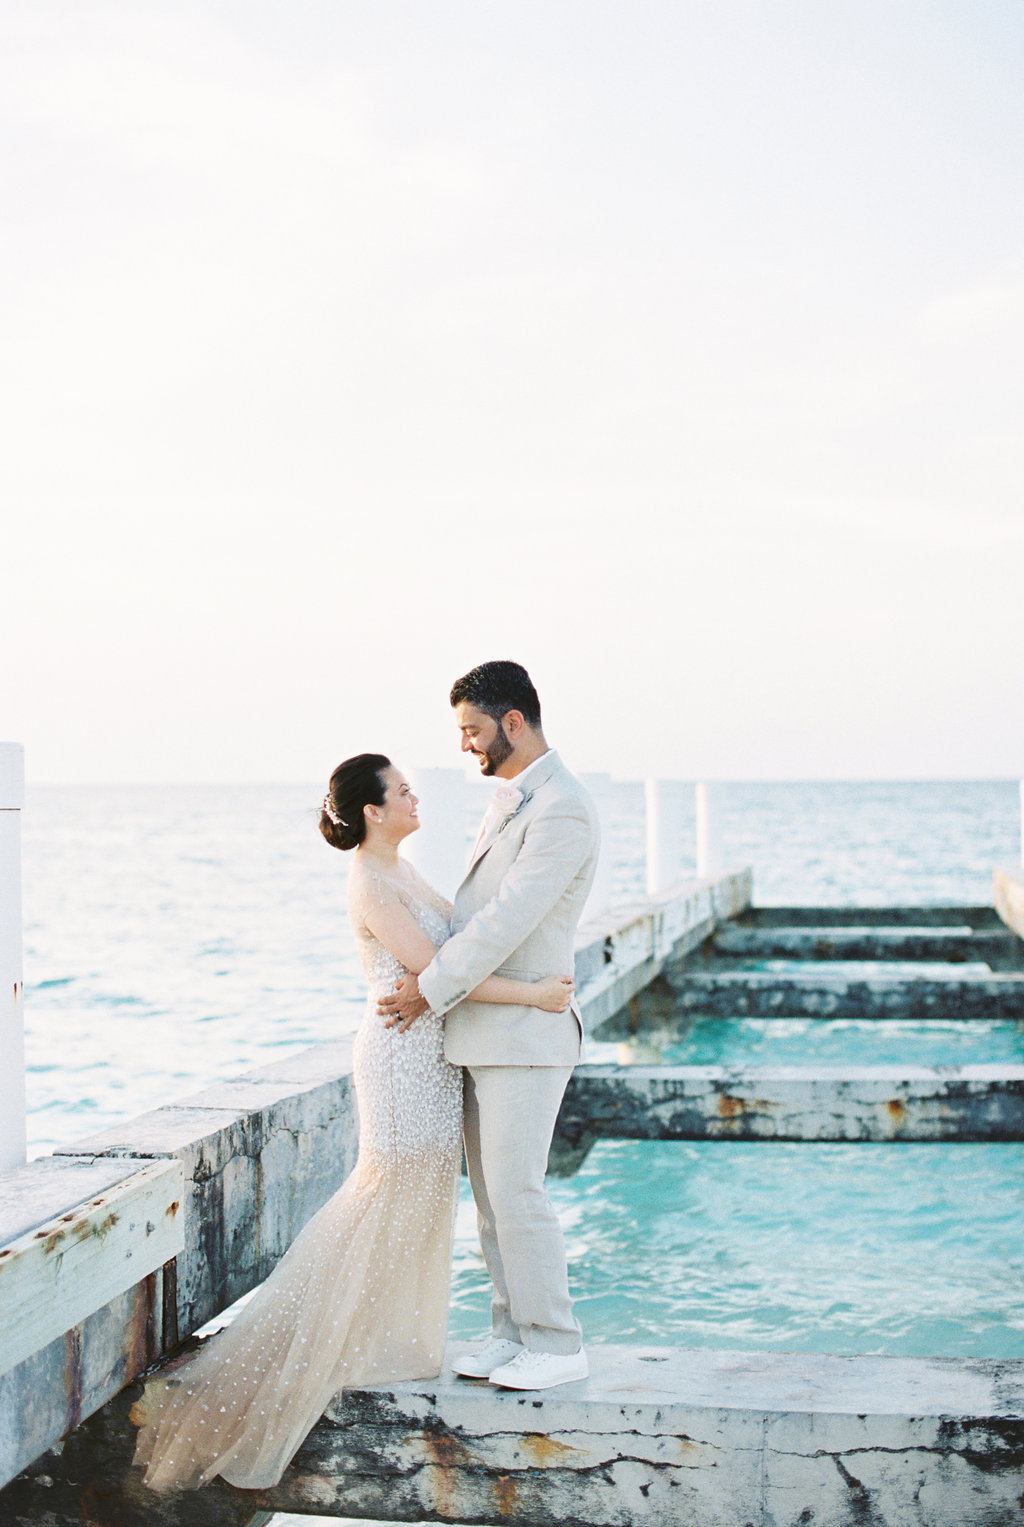 Intimate destination wedding in turks and caicos ruffled intimate destination wedding in turks and caicos photo by jen jar photography https junglespirit Choice Image